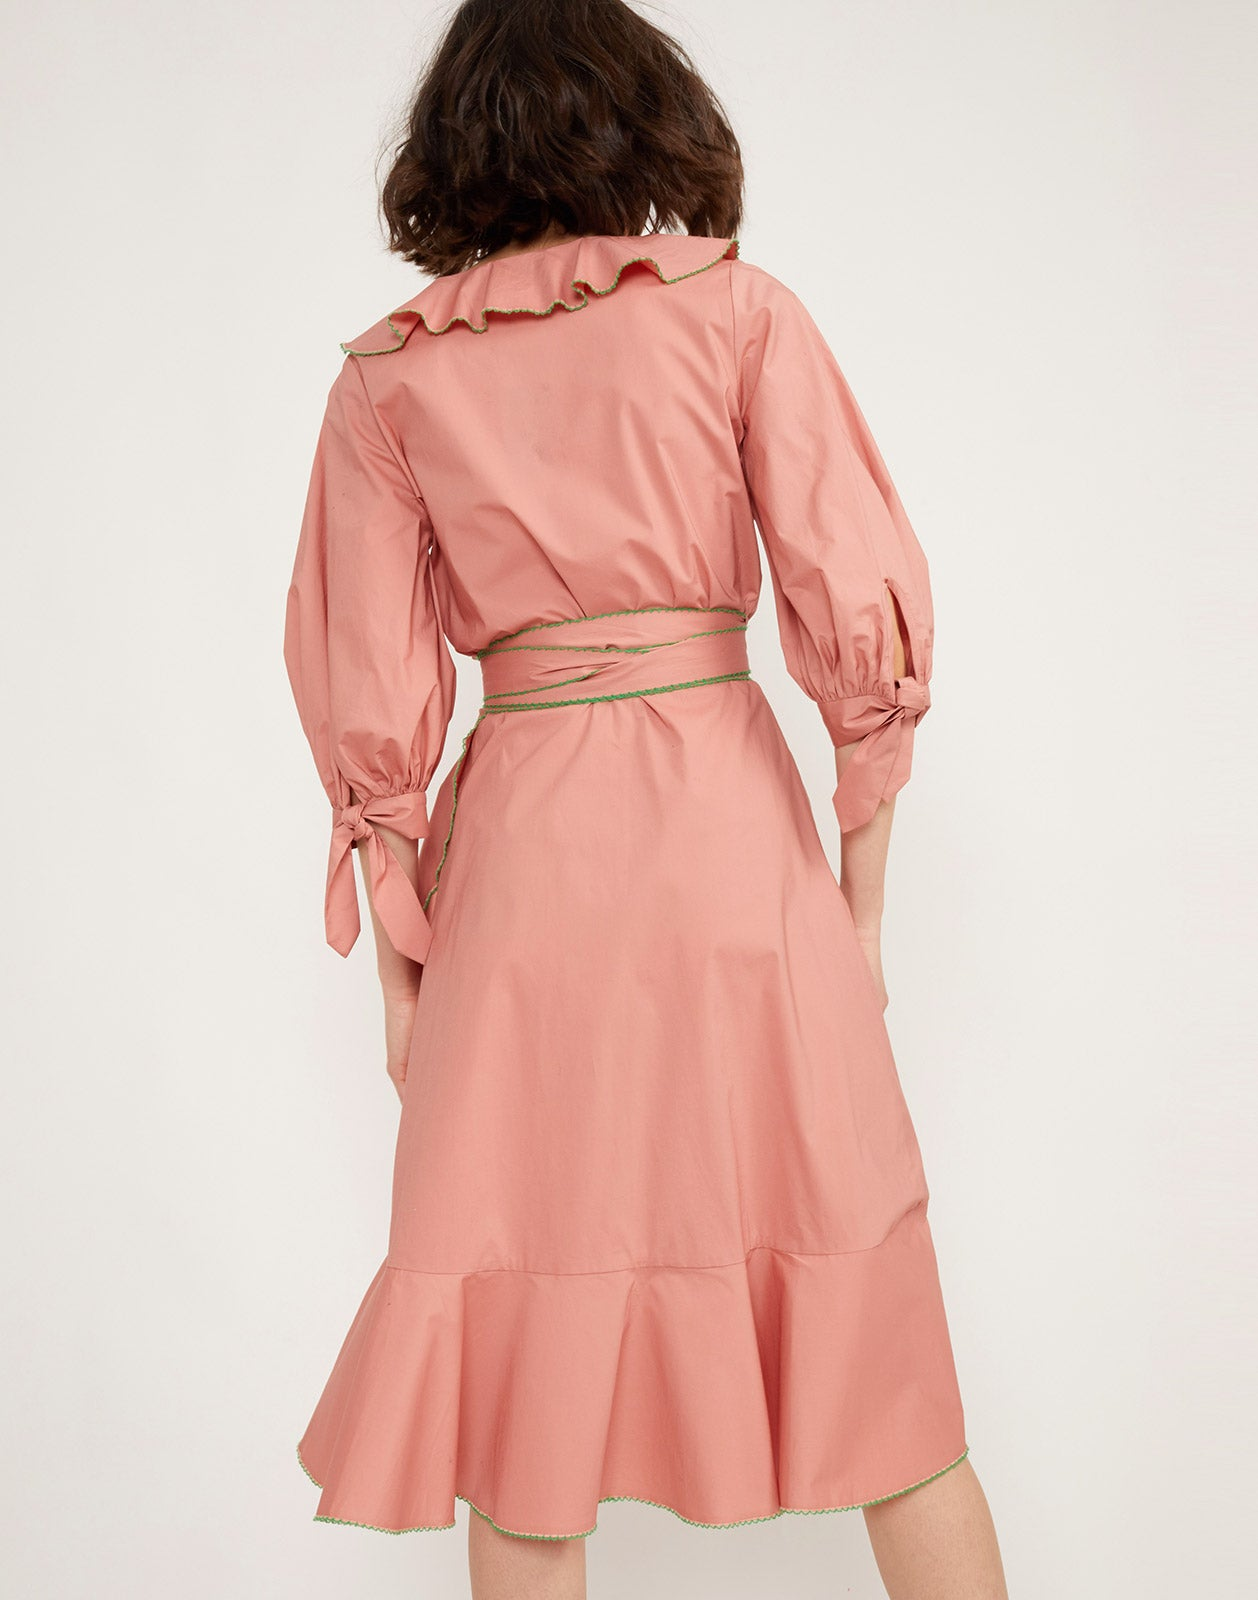 Alternate back view model wearing Cleo Embroidered Wrap Dress